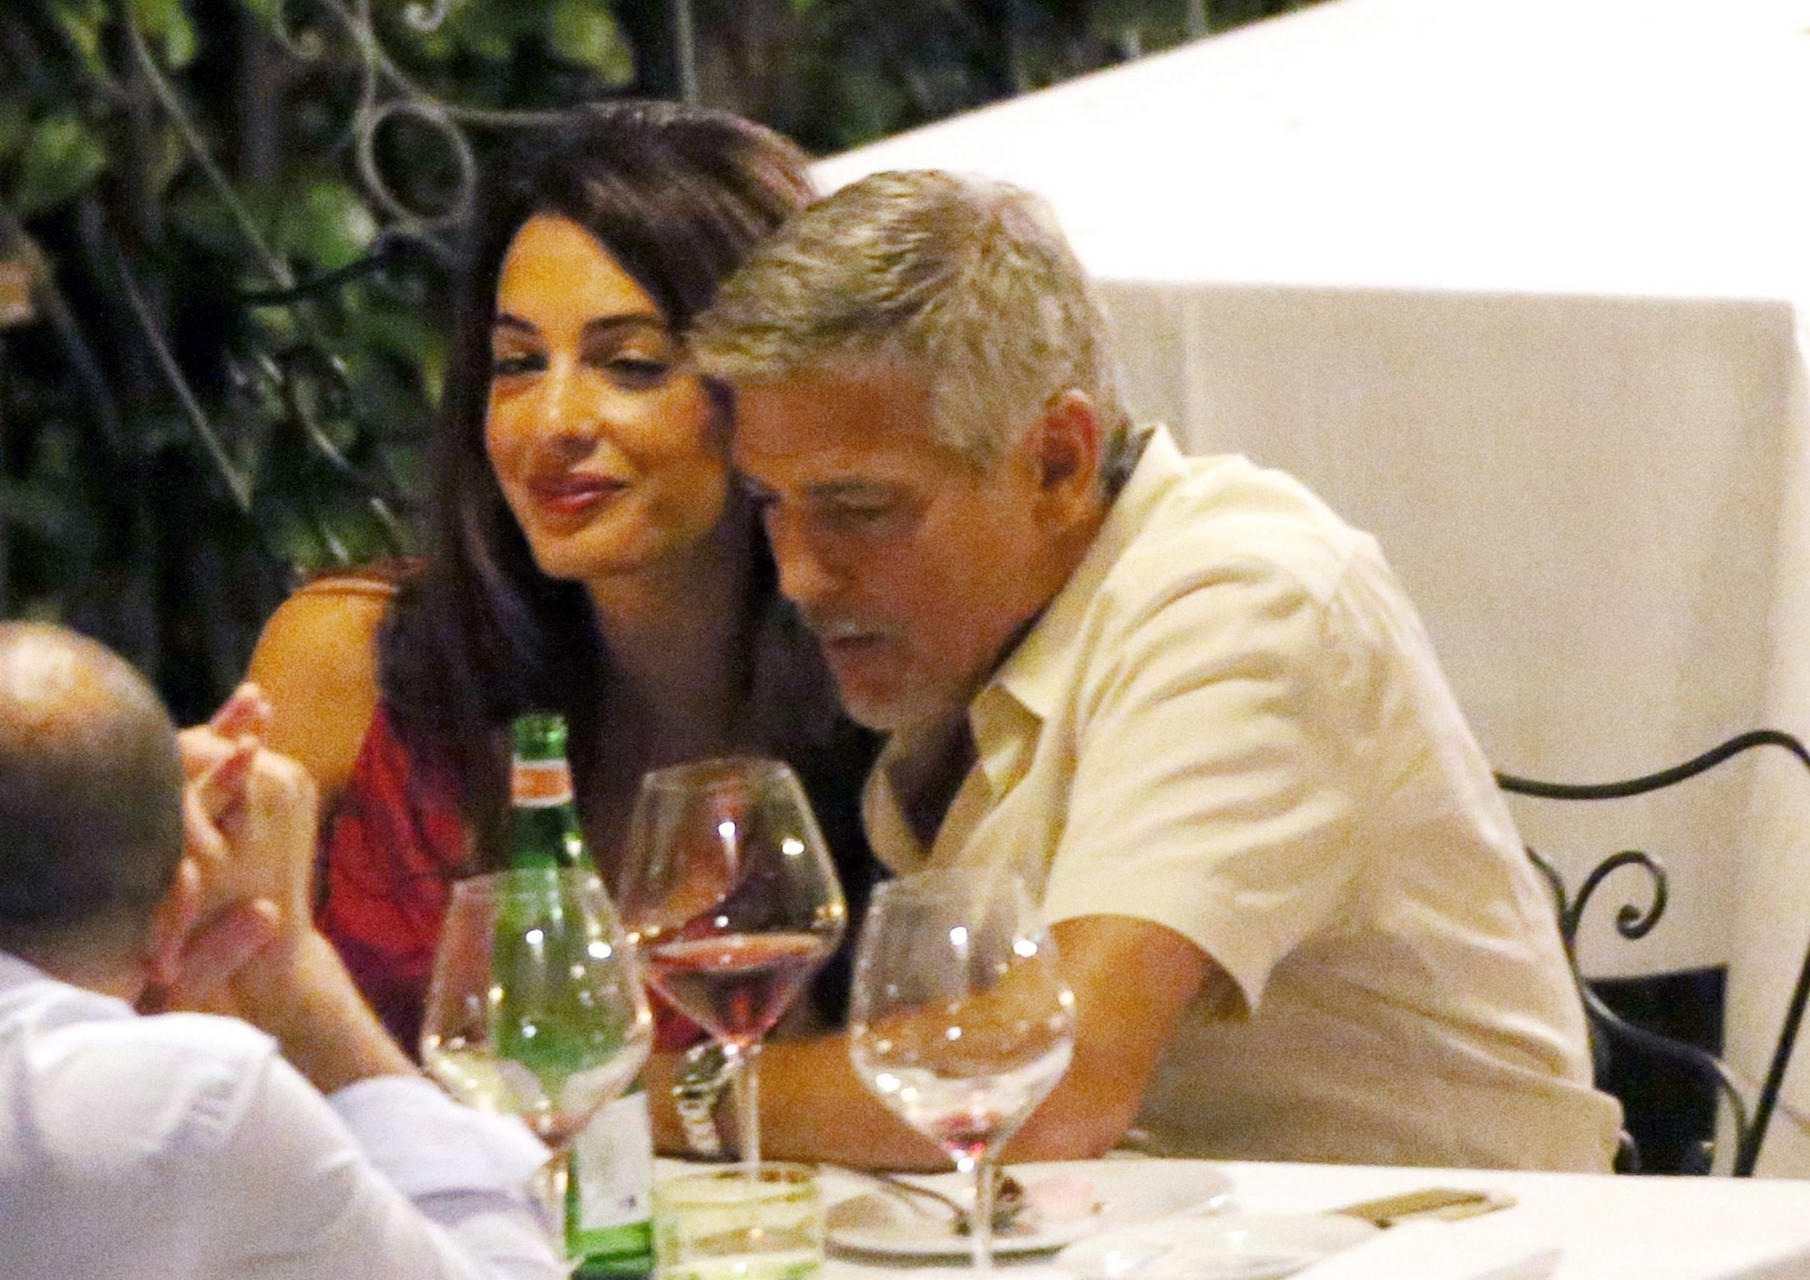 Amal clooney and george clooney candlelight dinner at le darsene in bellagio italy nude (98 photo), Paparazzi Celebrity photos